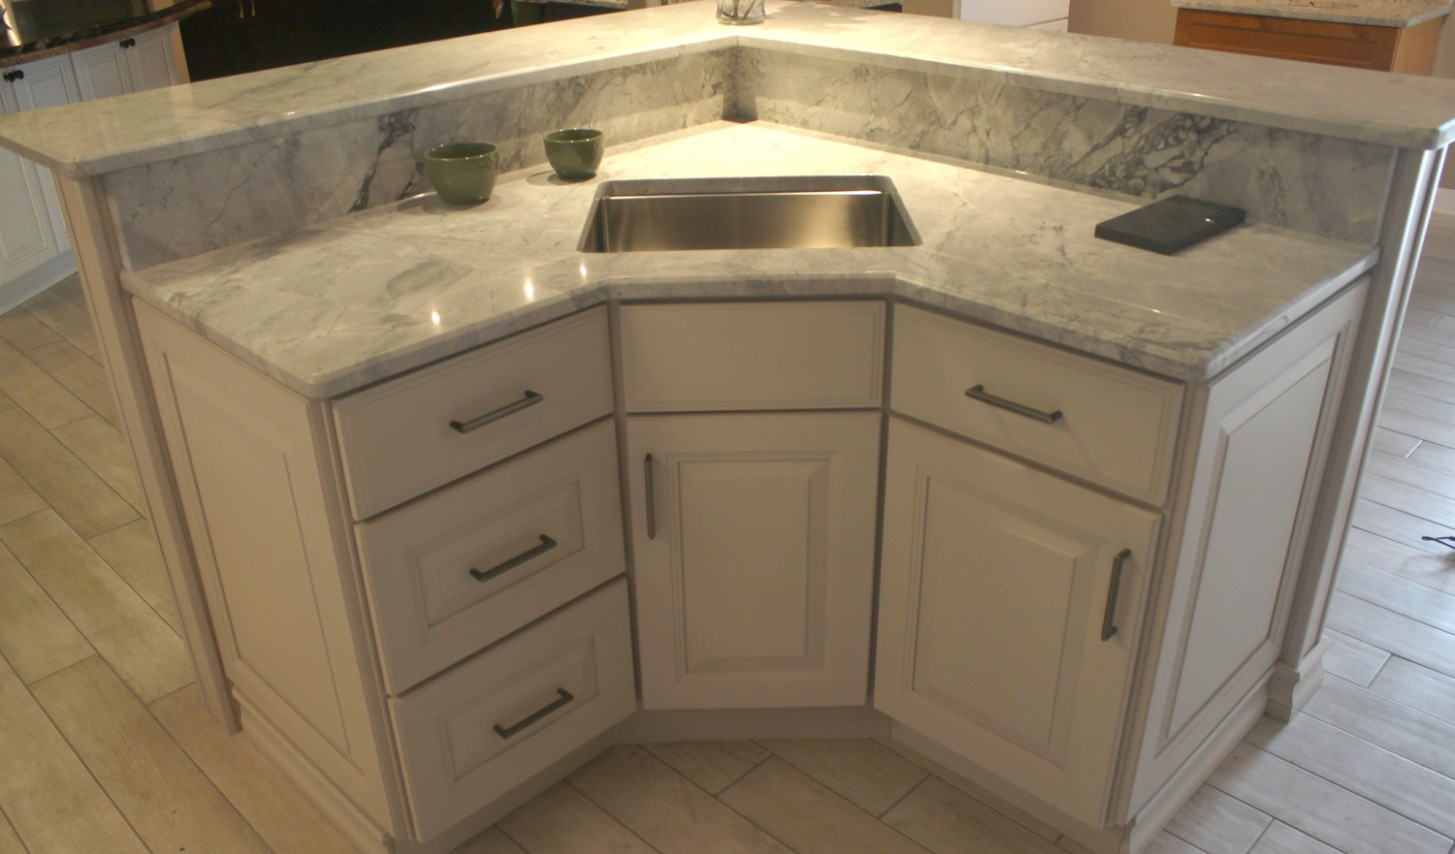 Niles Kitchen Cabinets, Sinks and Countertops — Rock Counter - Kitchen Cabinets Niles